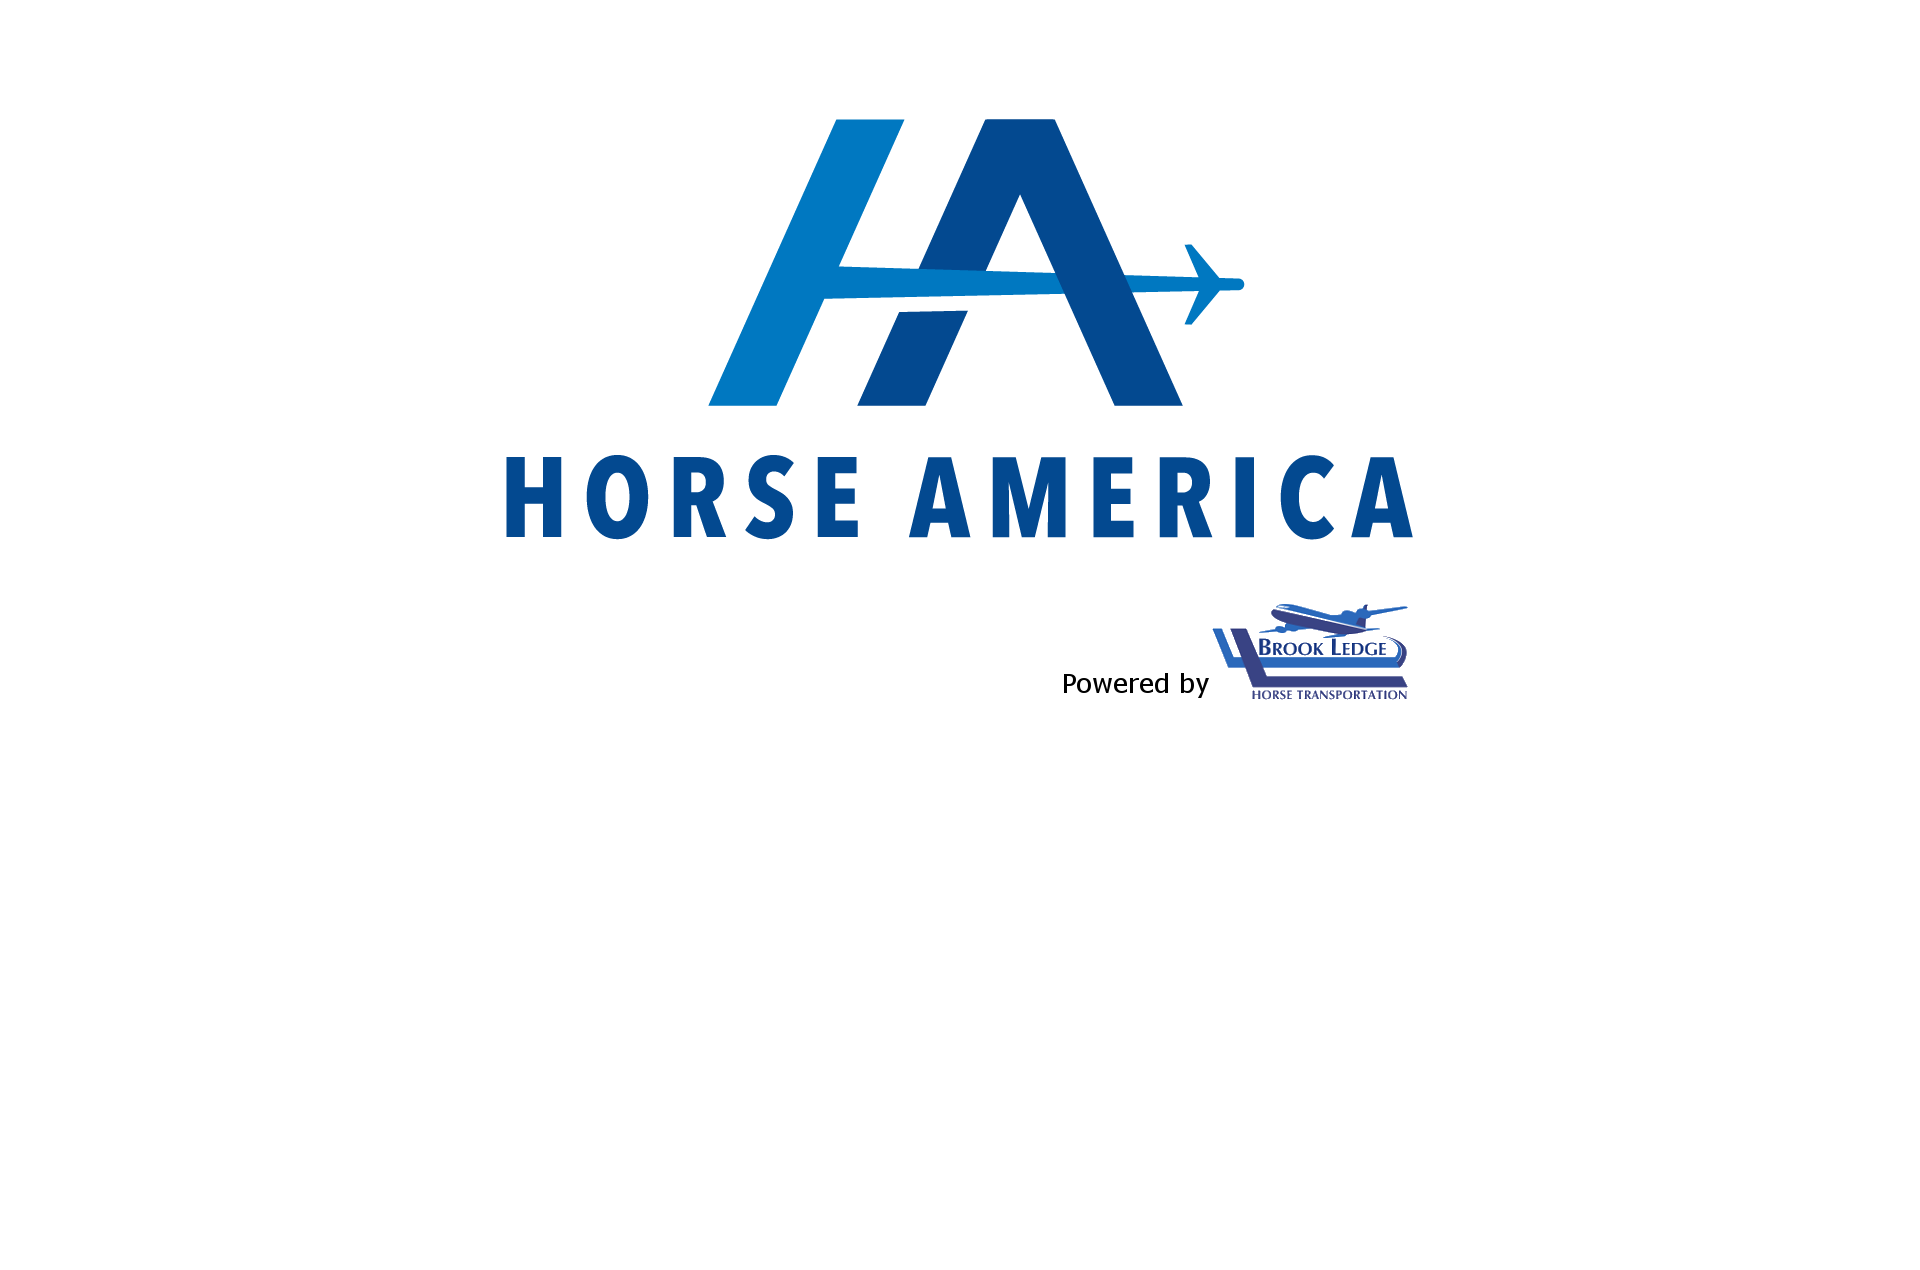 Horse America, powered by Brook Ledge